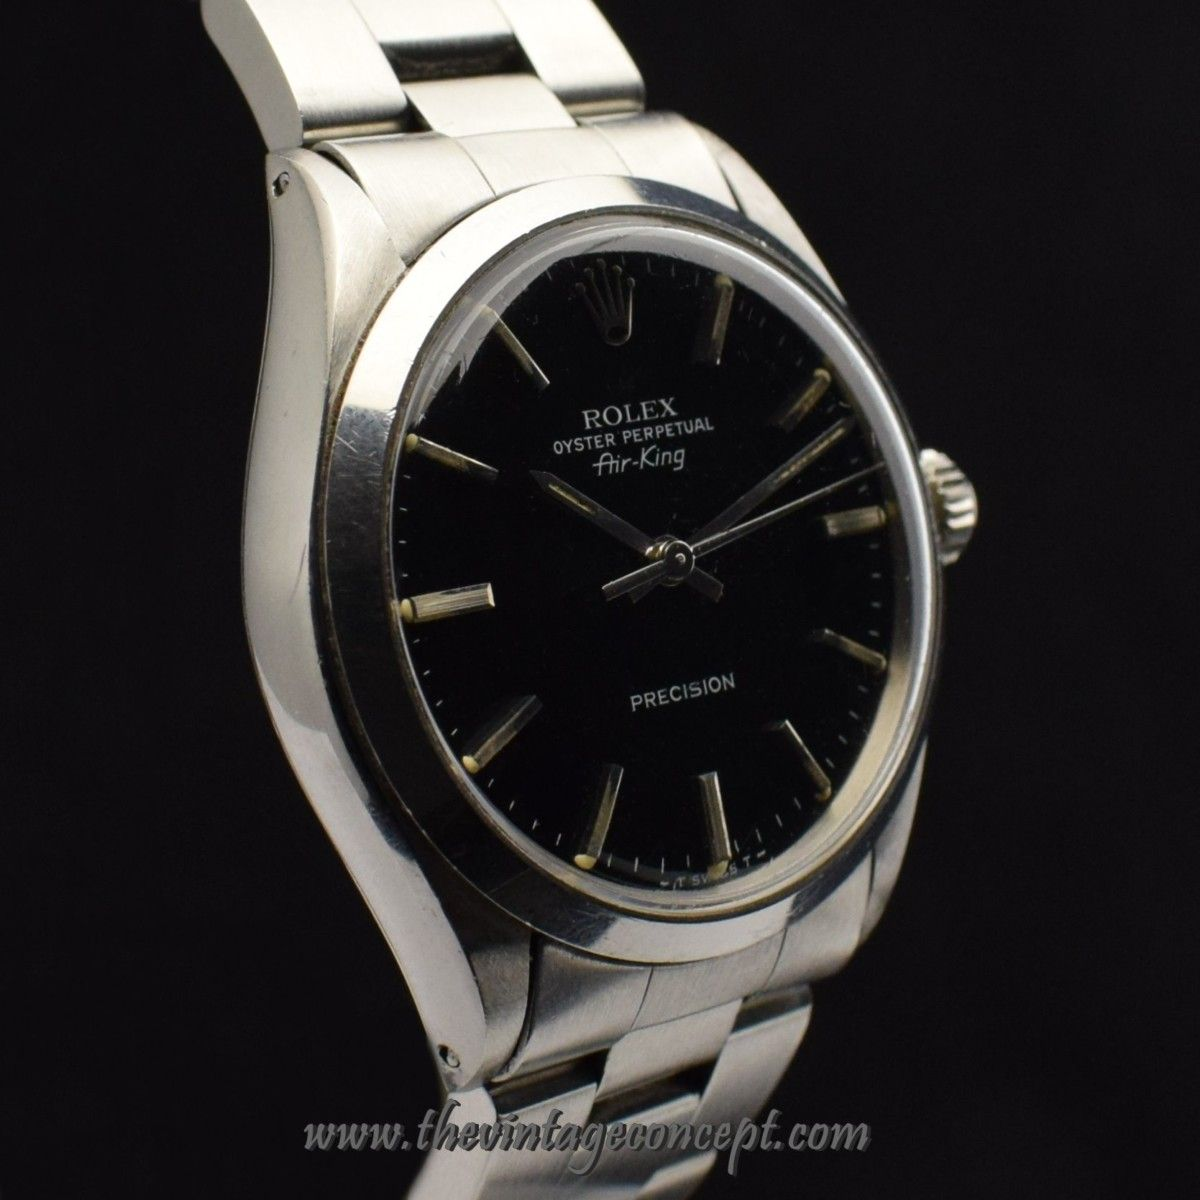 Rolex Air King Black Dial 5500 (SOLD) The Vintage